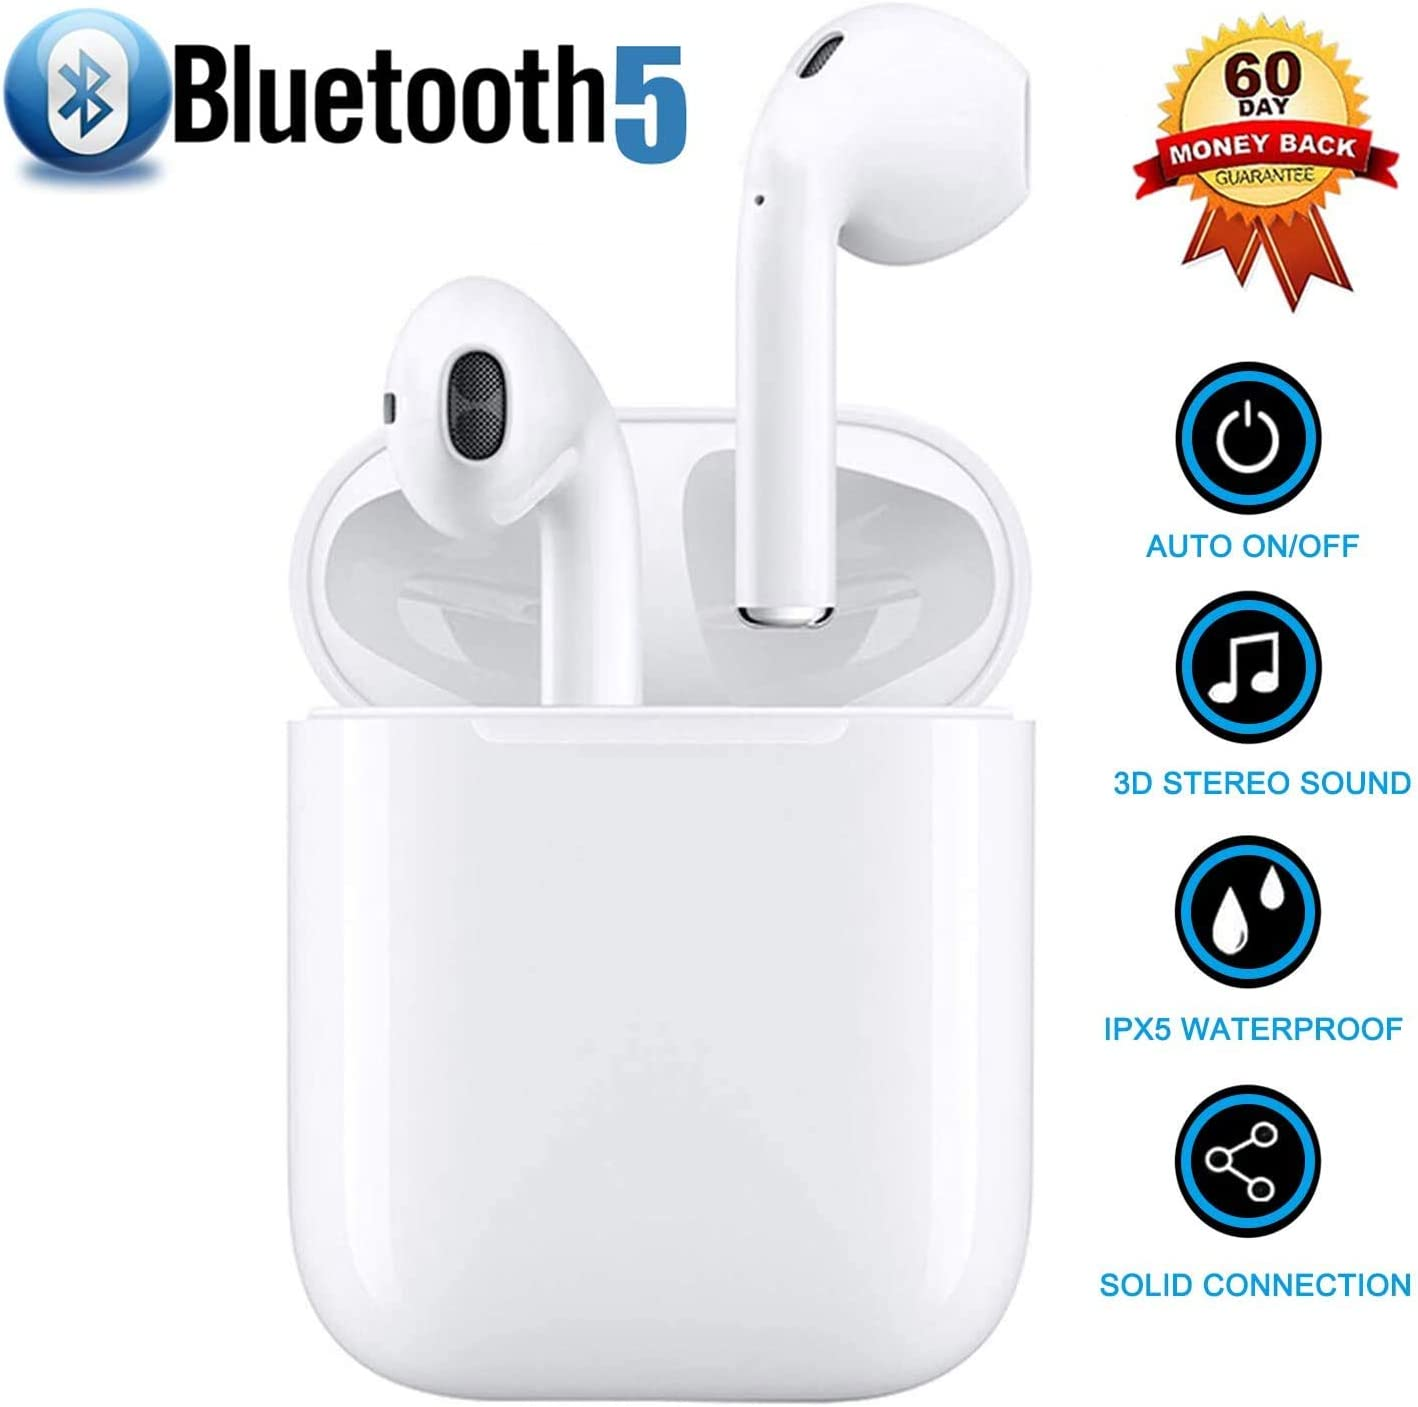 Bluetooth, Auriculares inalámbricos Bluetooth In-Ear Mini Auriculares Auriculares,emparejamiento automático emergente,Deportivos para Apple/Airpods/Android/iPhone/Samsung